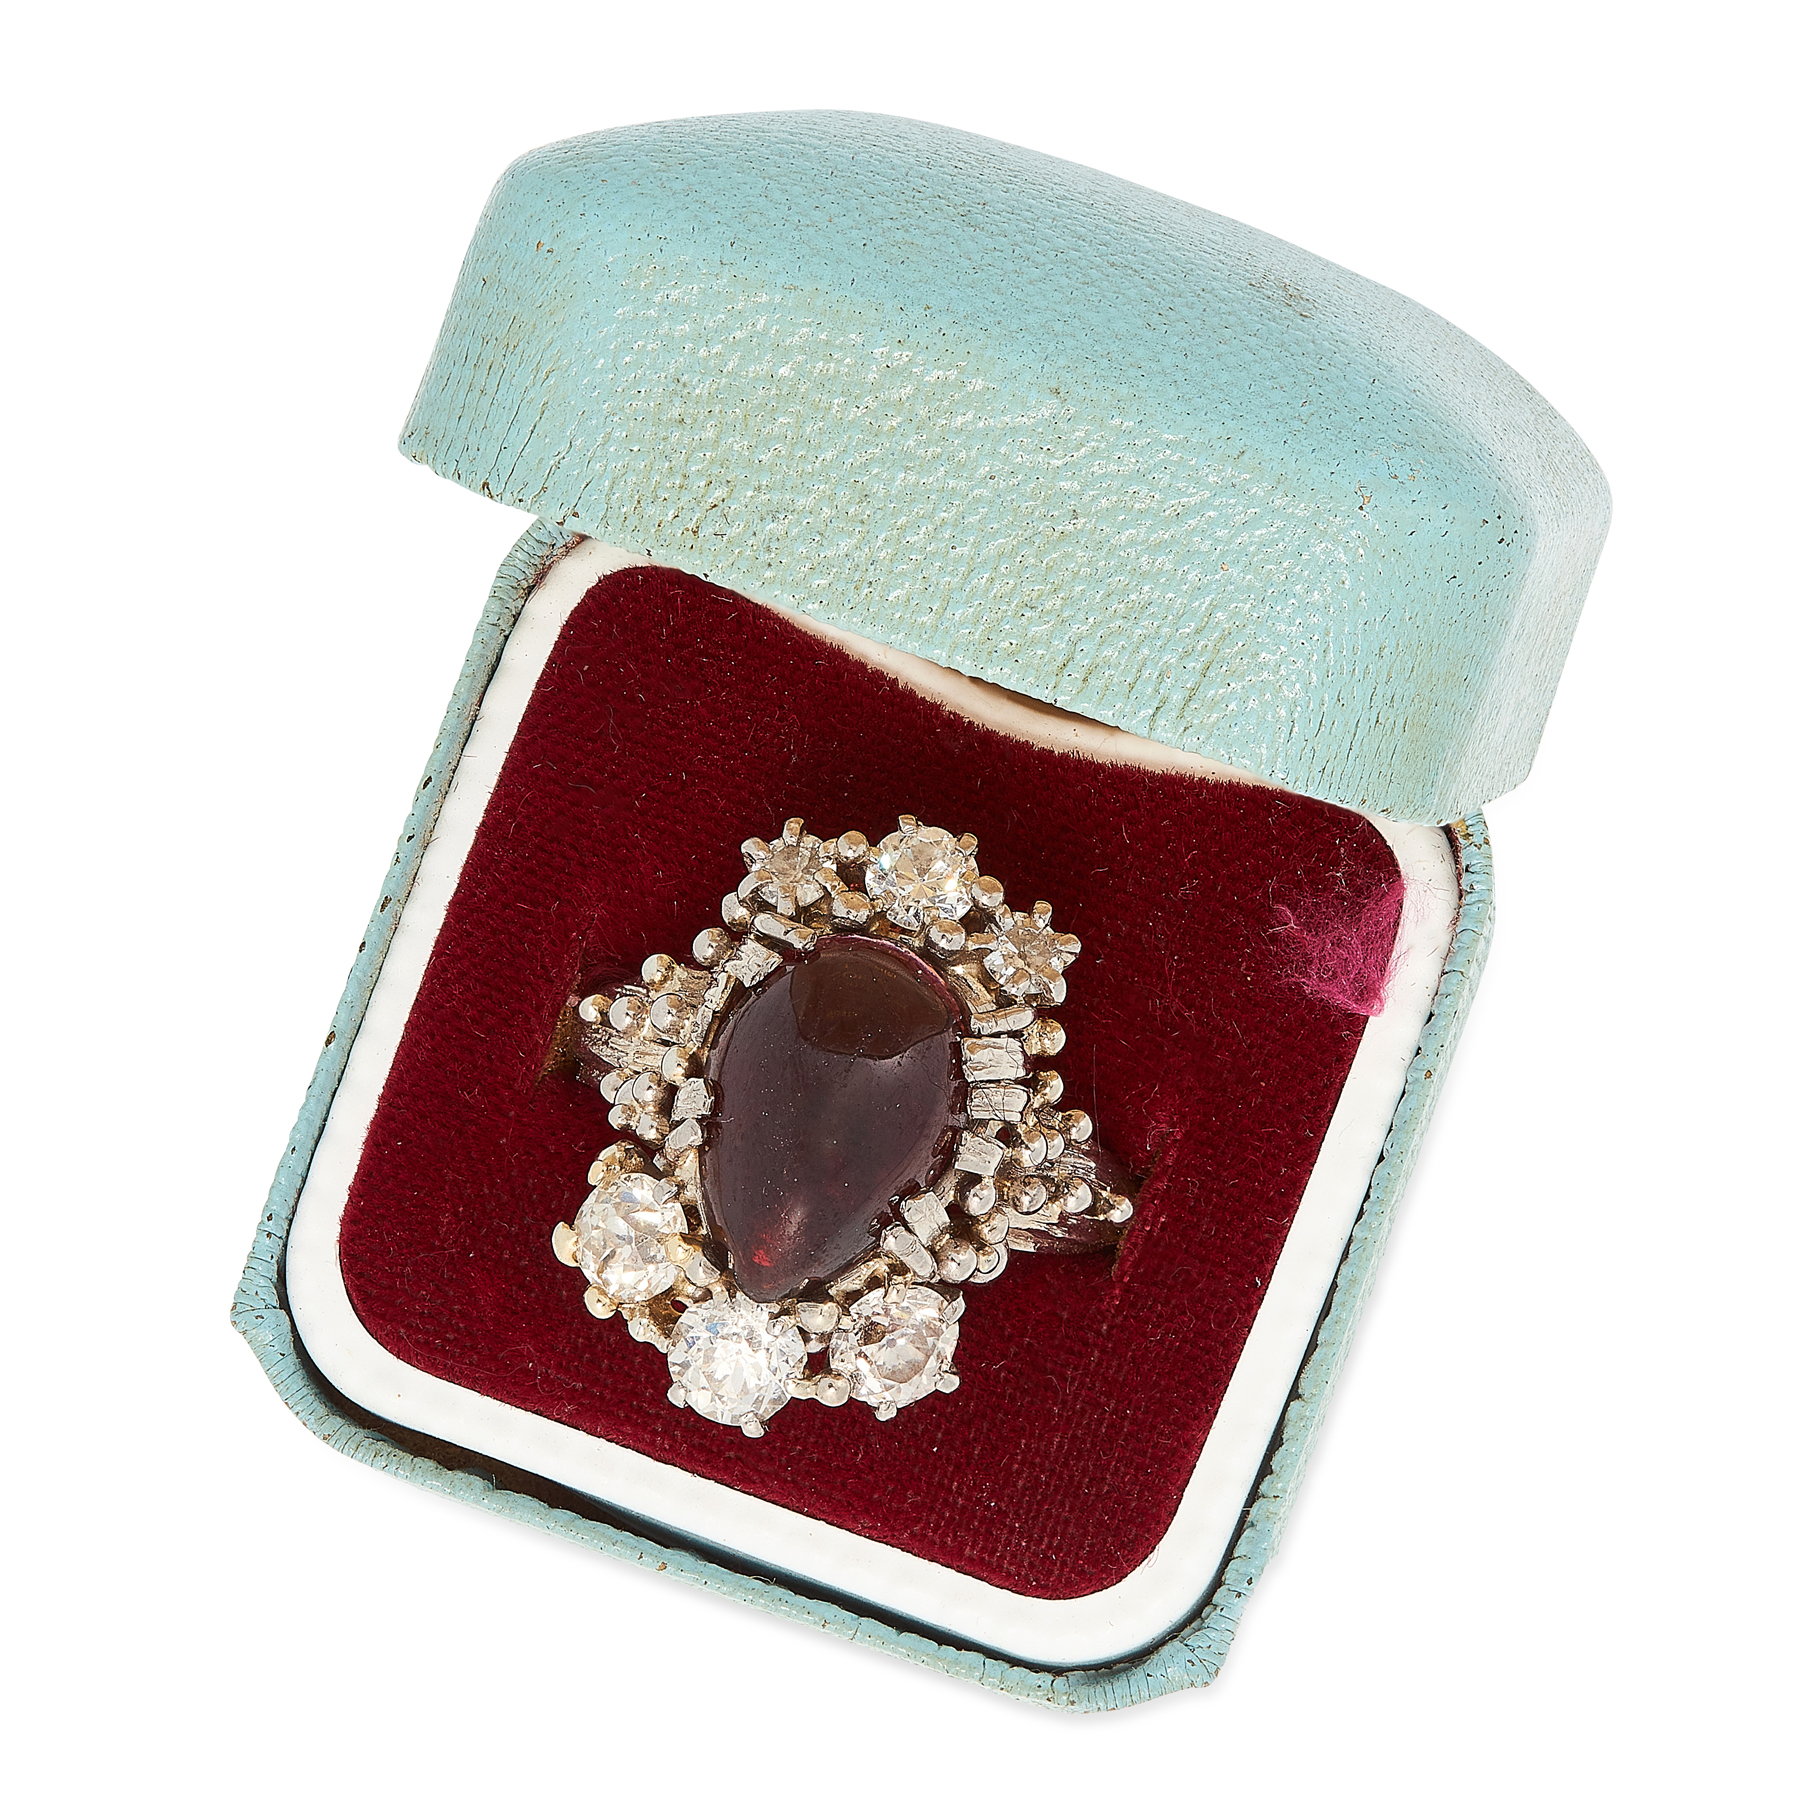 A VINTAGE GARNET AND DIAMOND RING, 1976 in 18ct white gold, set with an antique garnet cabochon - Image 2 of 2